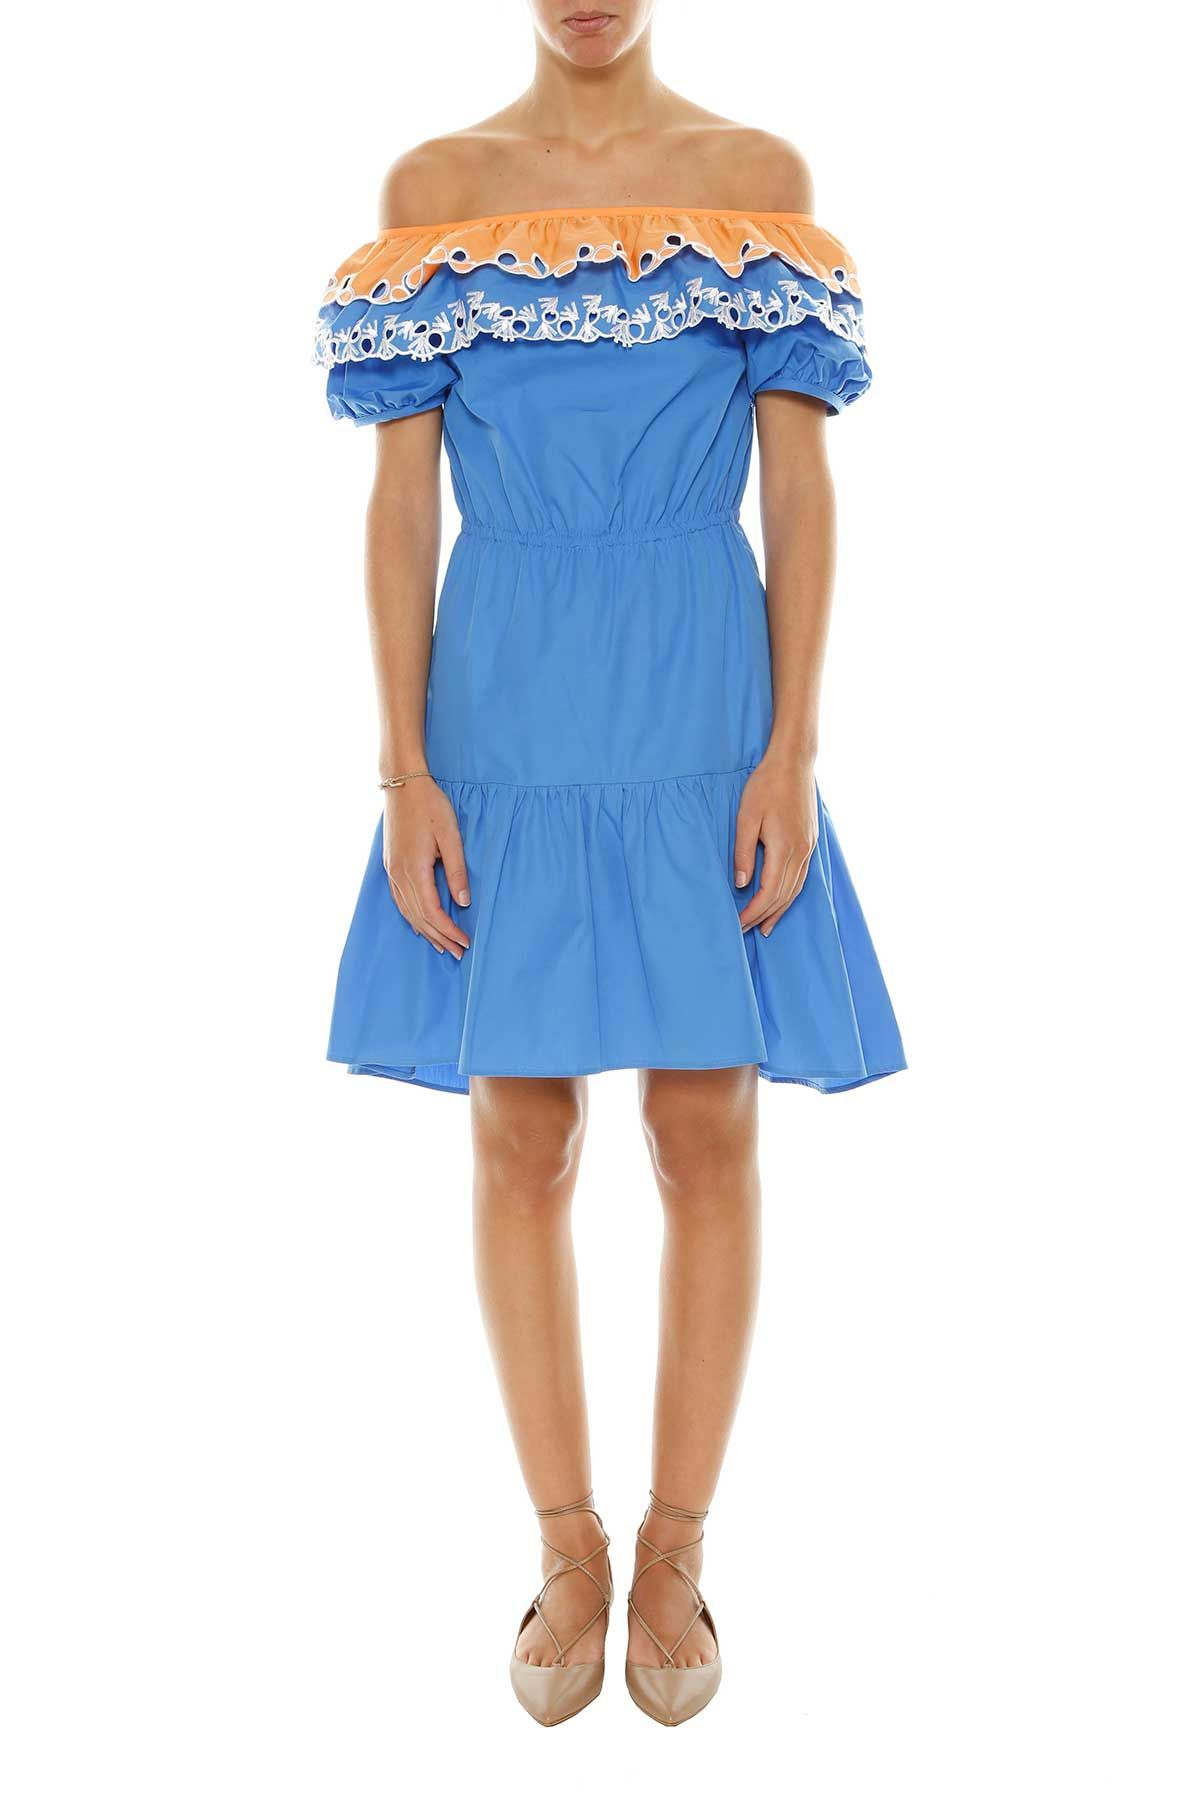 Peter Pilotto Embroidered Pallas Dress